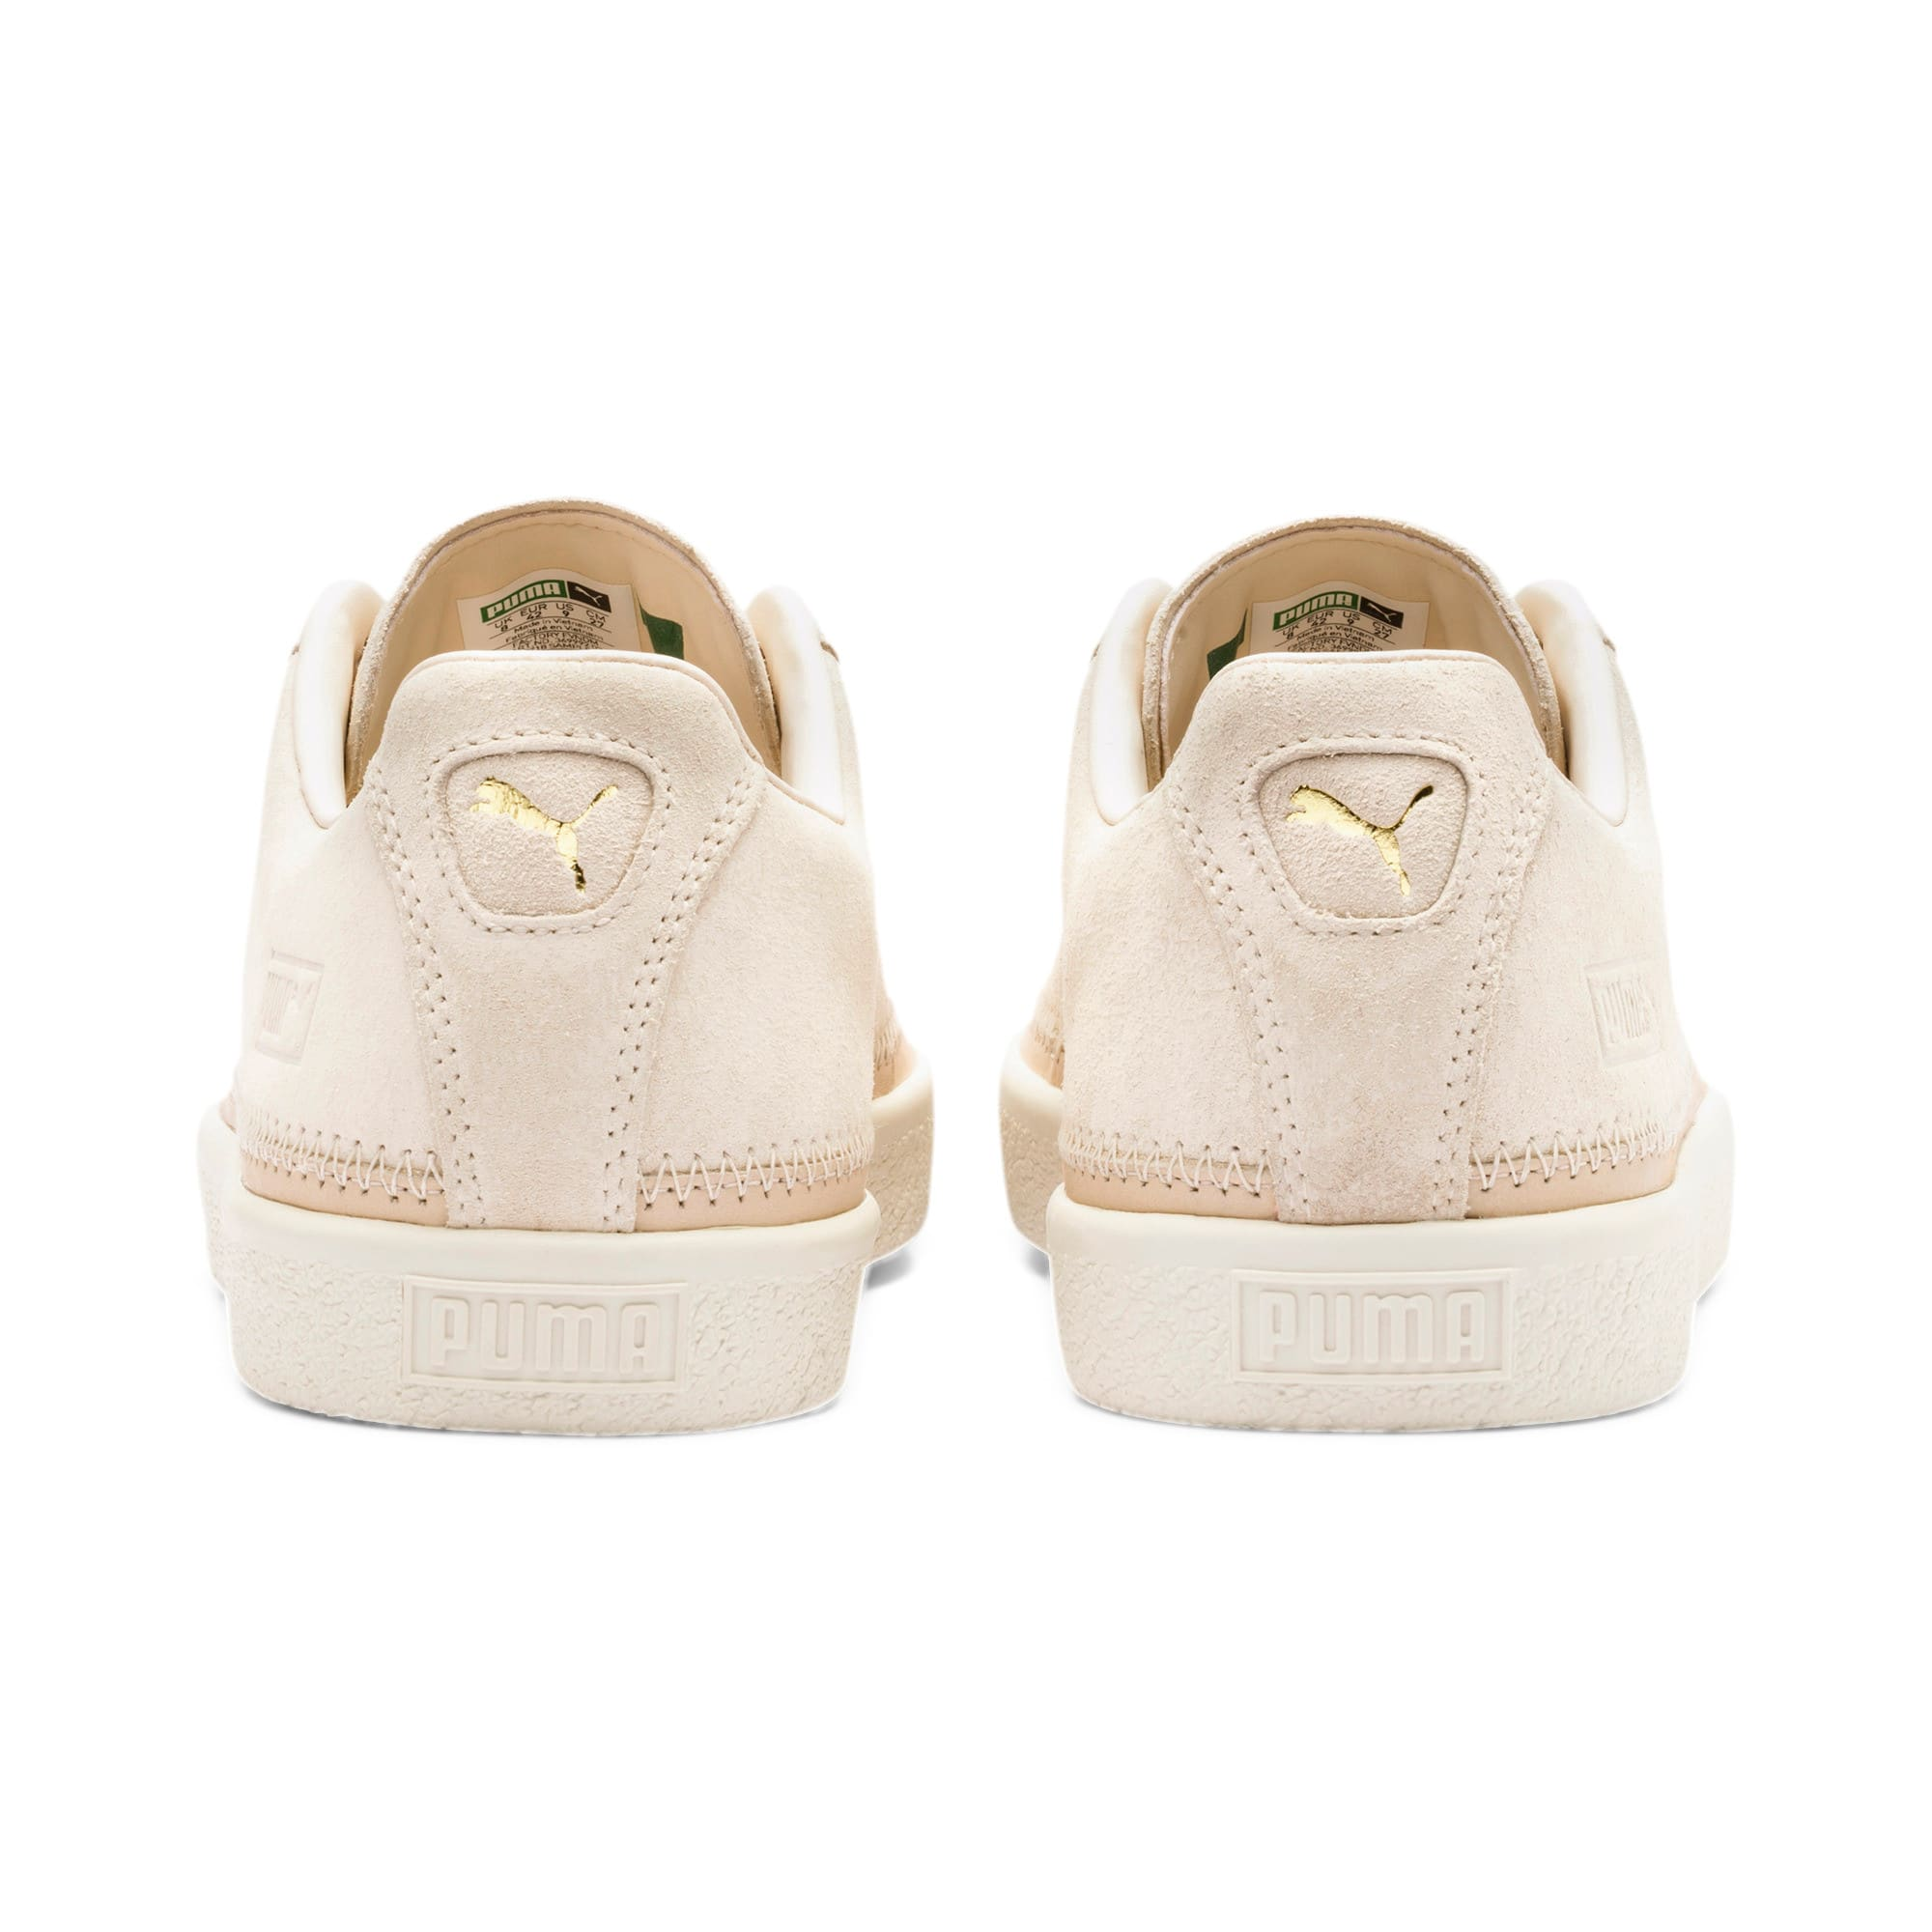 Thumbnail 5 of Suede Trim PRM Sneakers, White Smoke-Whisper White, medium